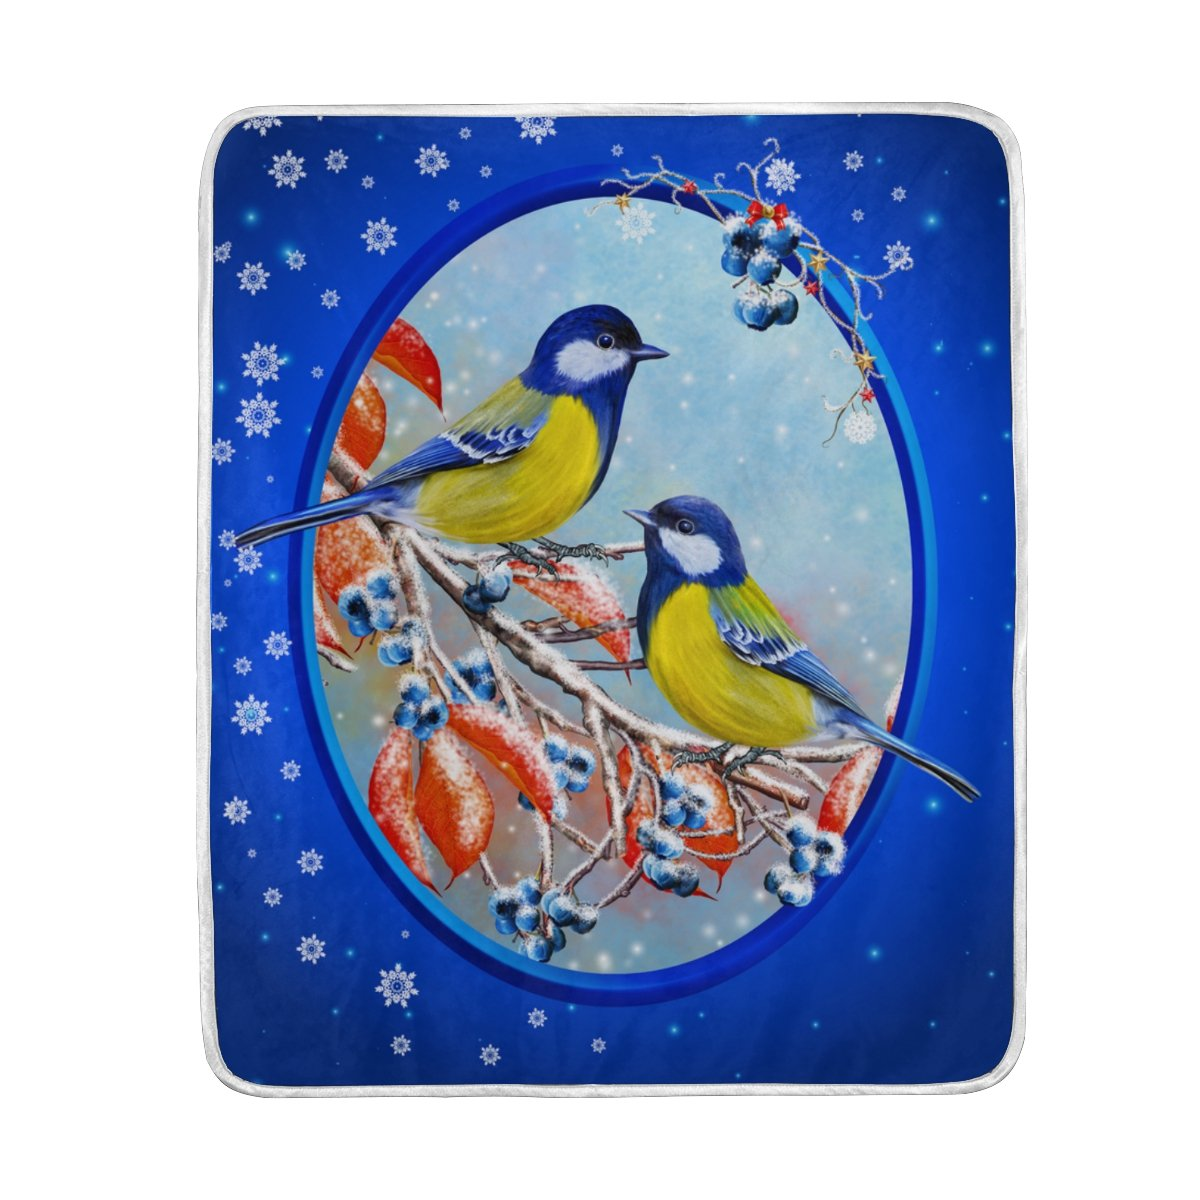 My Little Nest Warm Throw Blanket Small Bird Blue Berries Lightweight MicrofiberSoft Blanket Everyday Use for Bed Couch Sofa 50'' x 60''